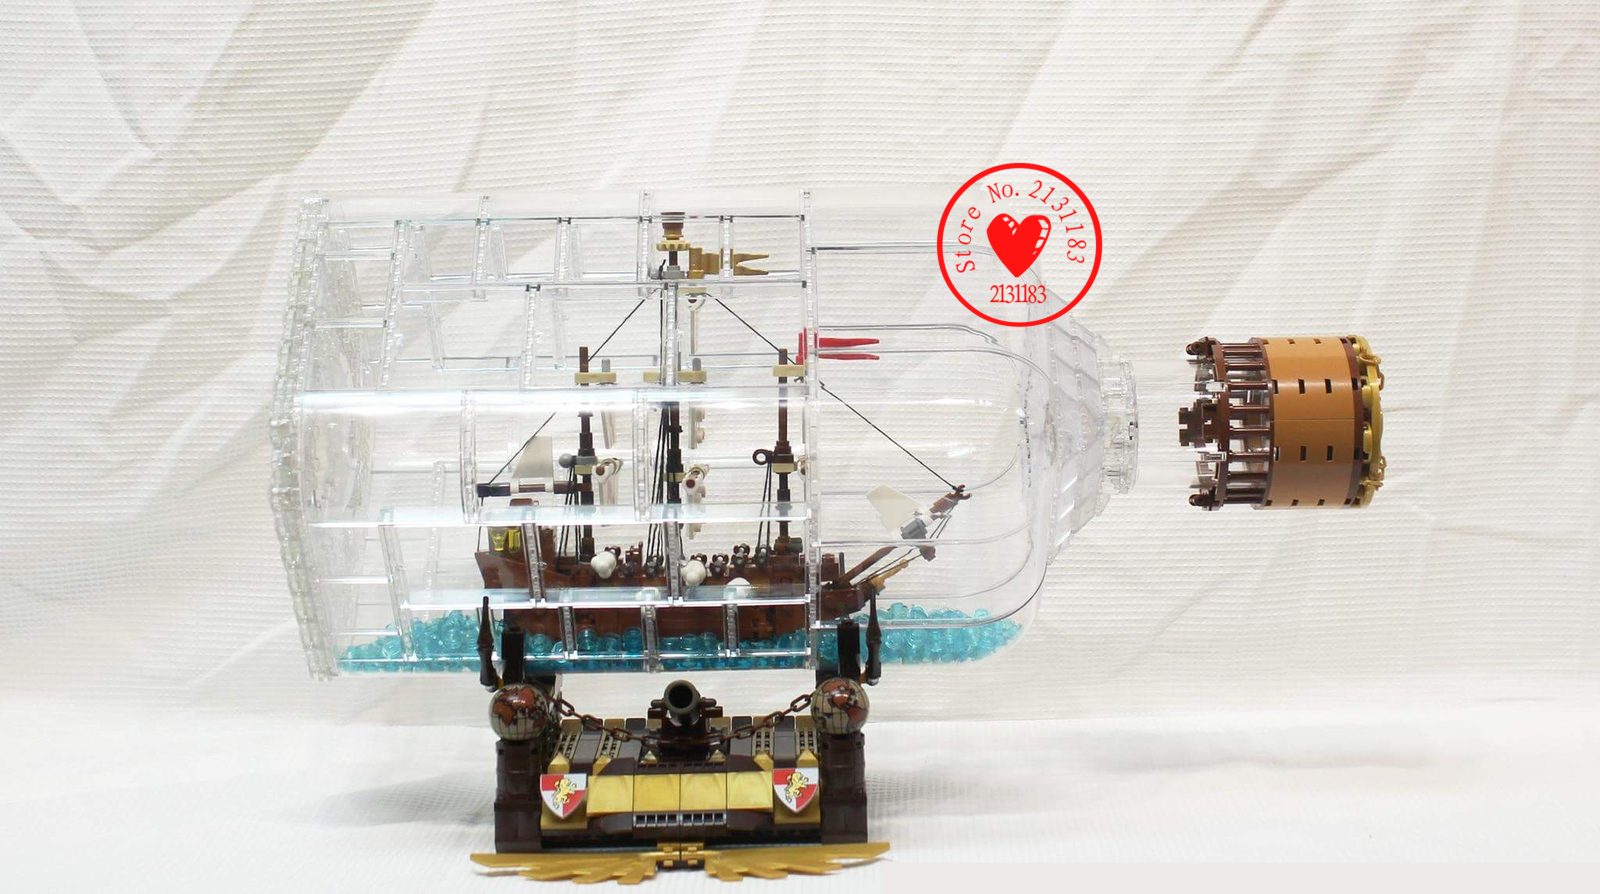 Lepin 16045  775pcs ideas Series creator Ship in Bottle Set model Building Blocks Bricks Pirates of the Caribbean Toys Gift kid lepin 16042 pirates of the caribbean ship series the slient mary set children building blocks bricks toys model gift 71042